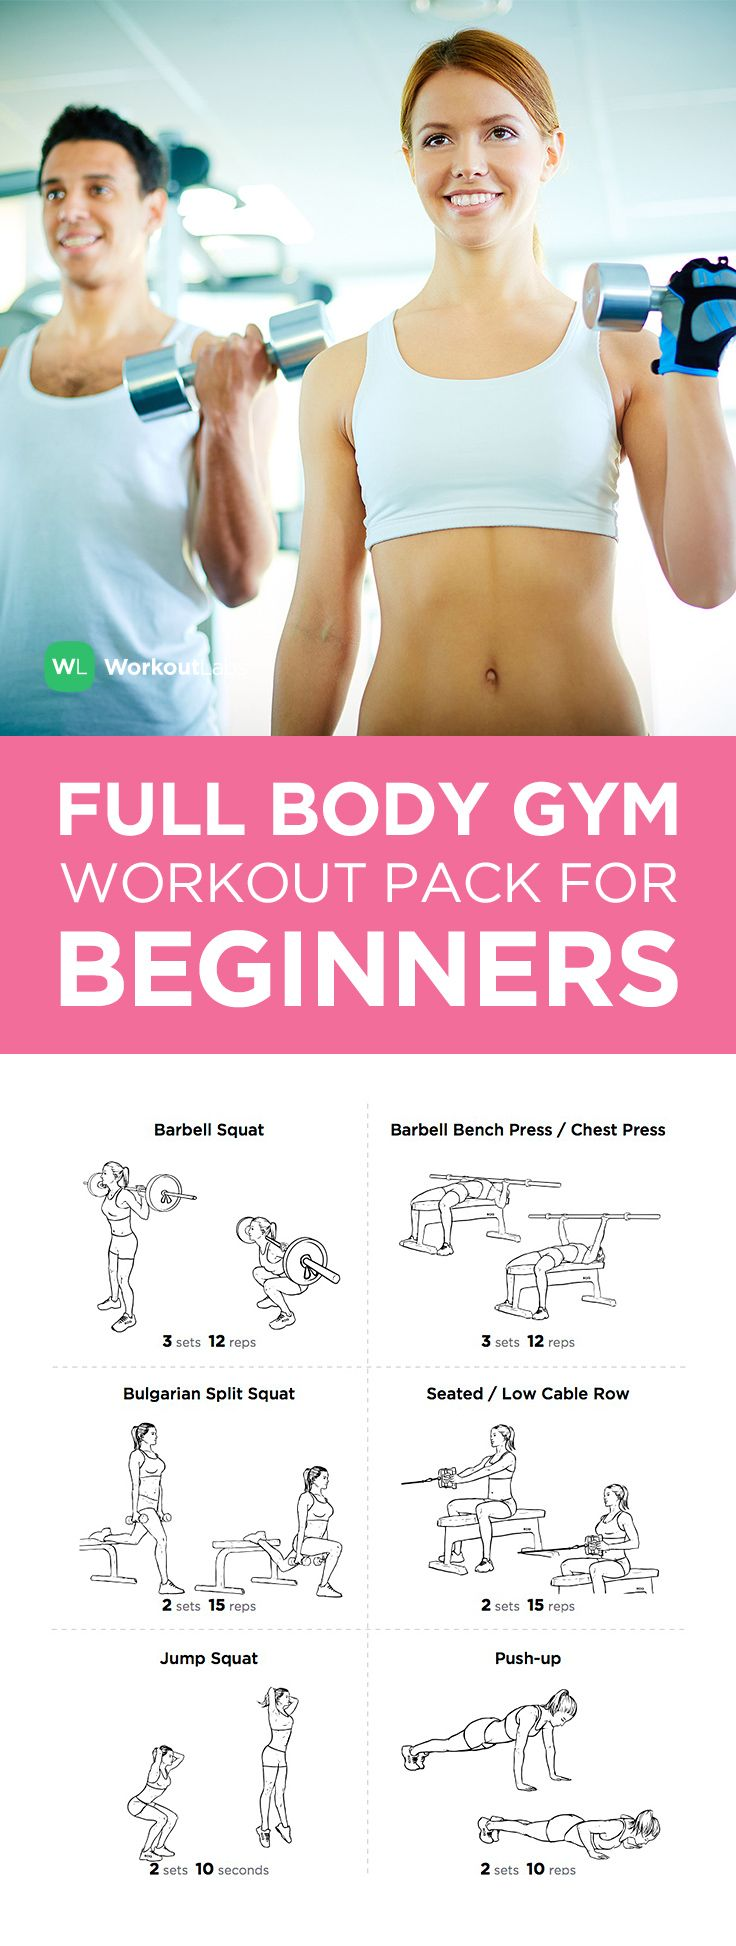 Visit https://WorkoutLabs.com/workout-packs/full-body-gym-workout-pack-for-beginners-men-women to download this Full Body Gym Workout Pack for Beginners